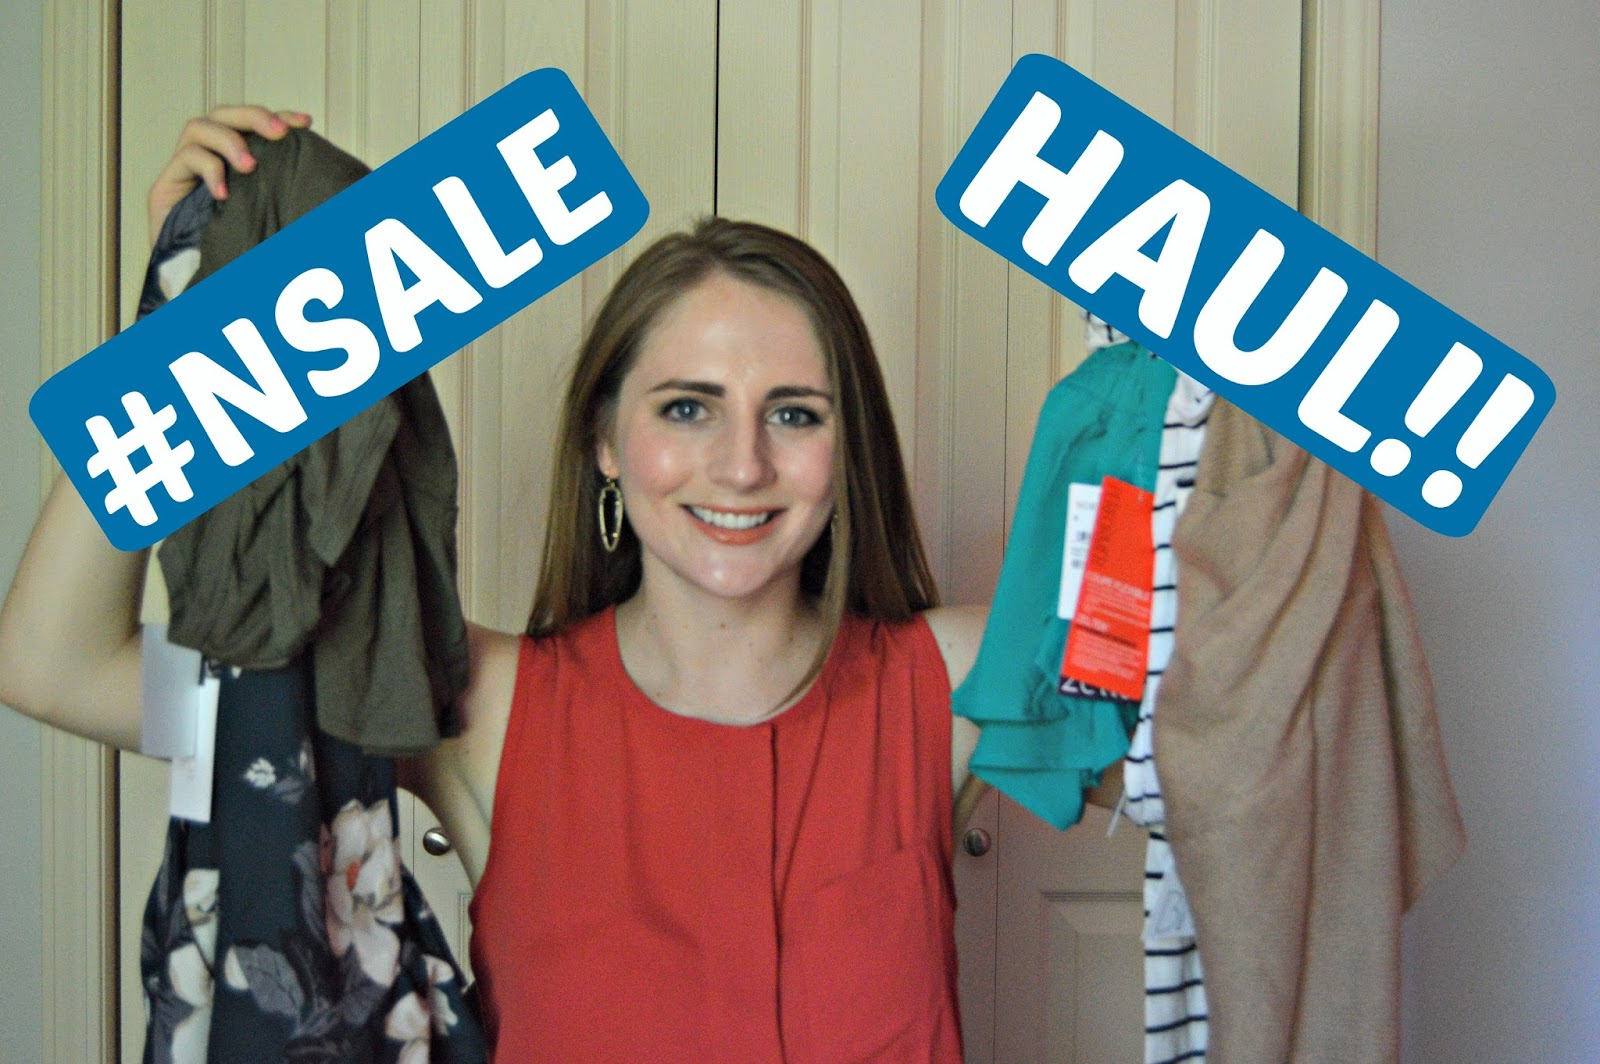 Nordstrom Anniversary Sale Haul | Sizing Guide for the Nordstrom Anniversary Sale | Review of the Nordstrom Anniversary Sale | #Nsale haul | a memory of us |